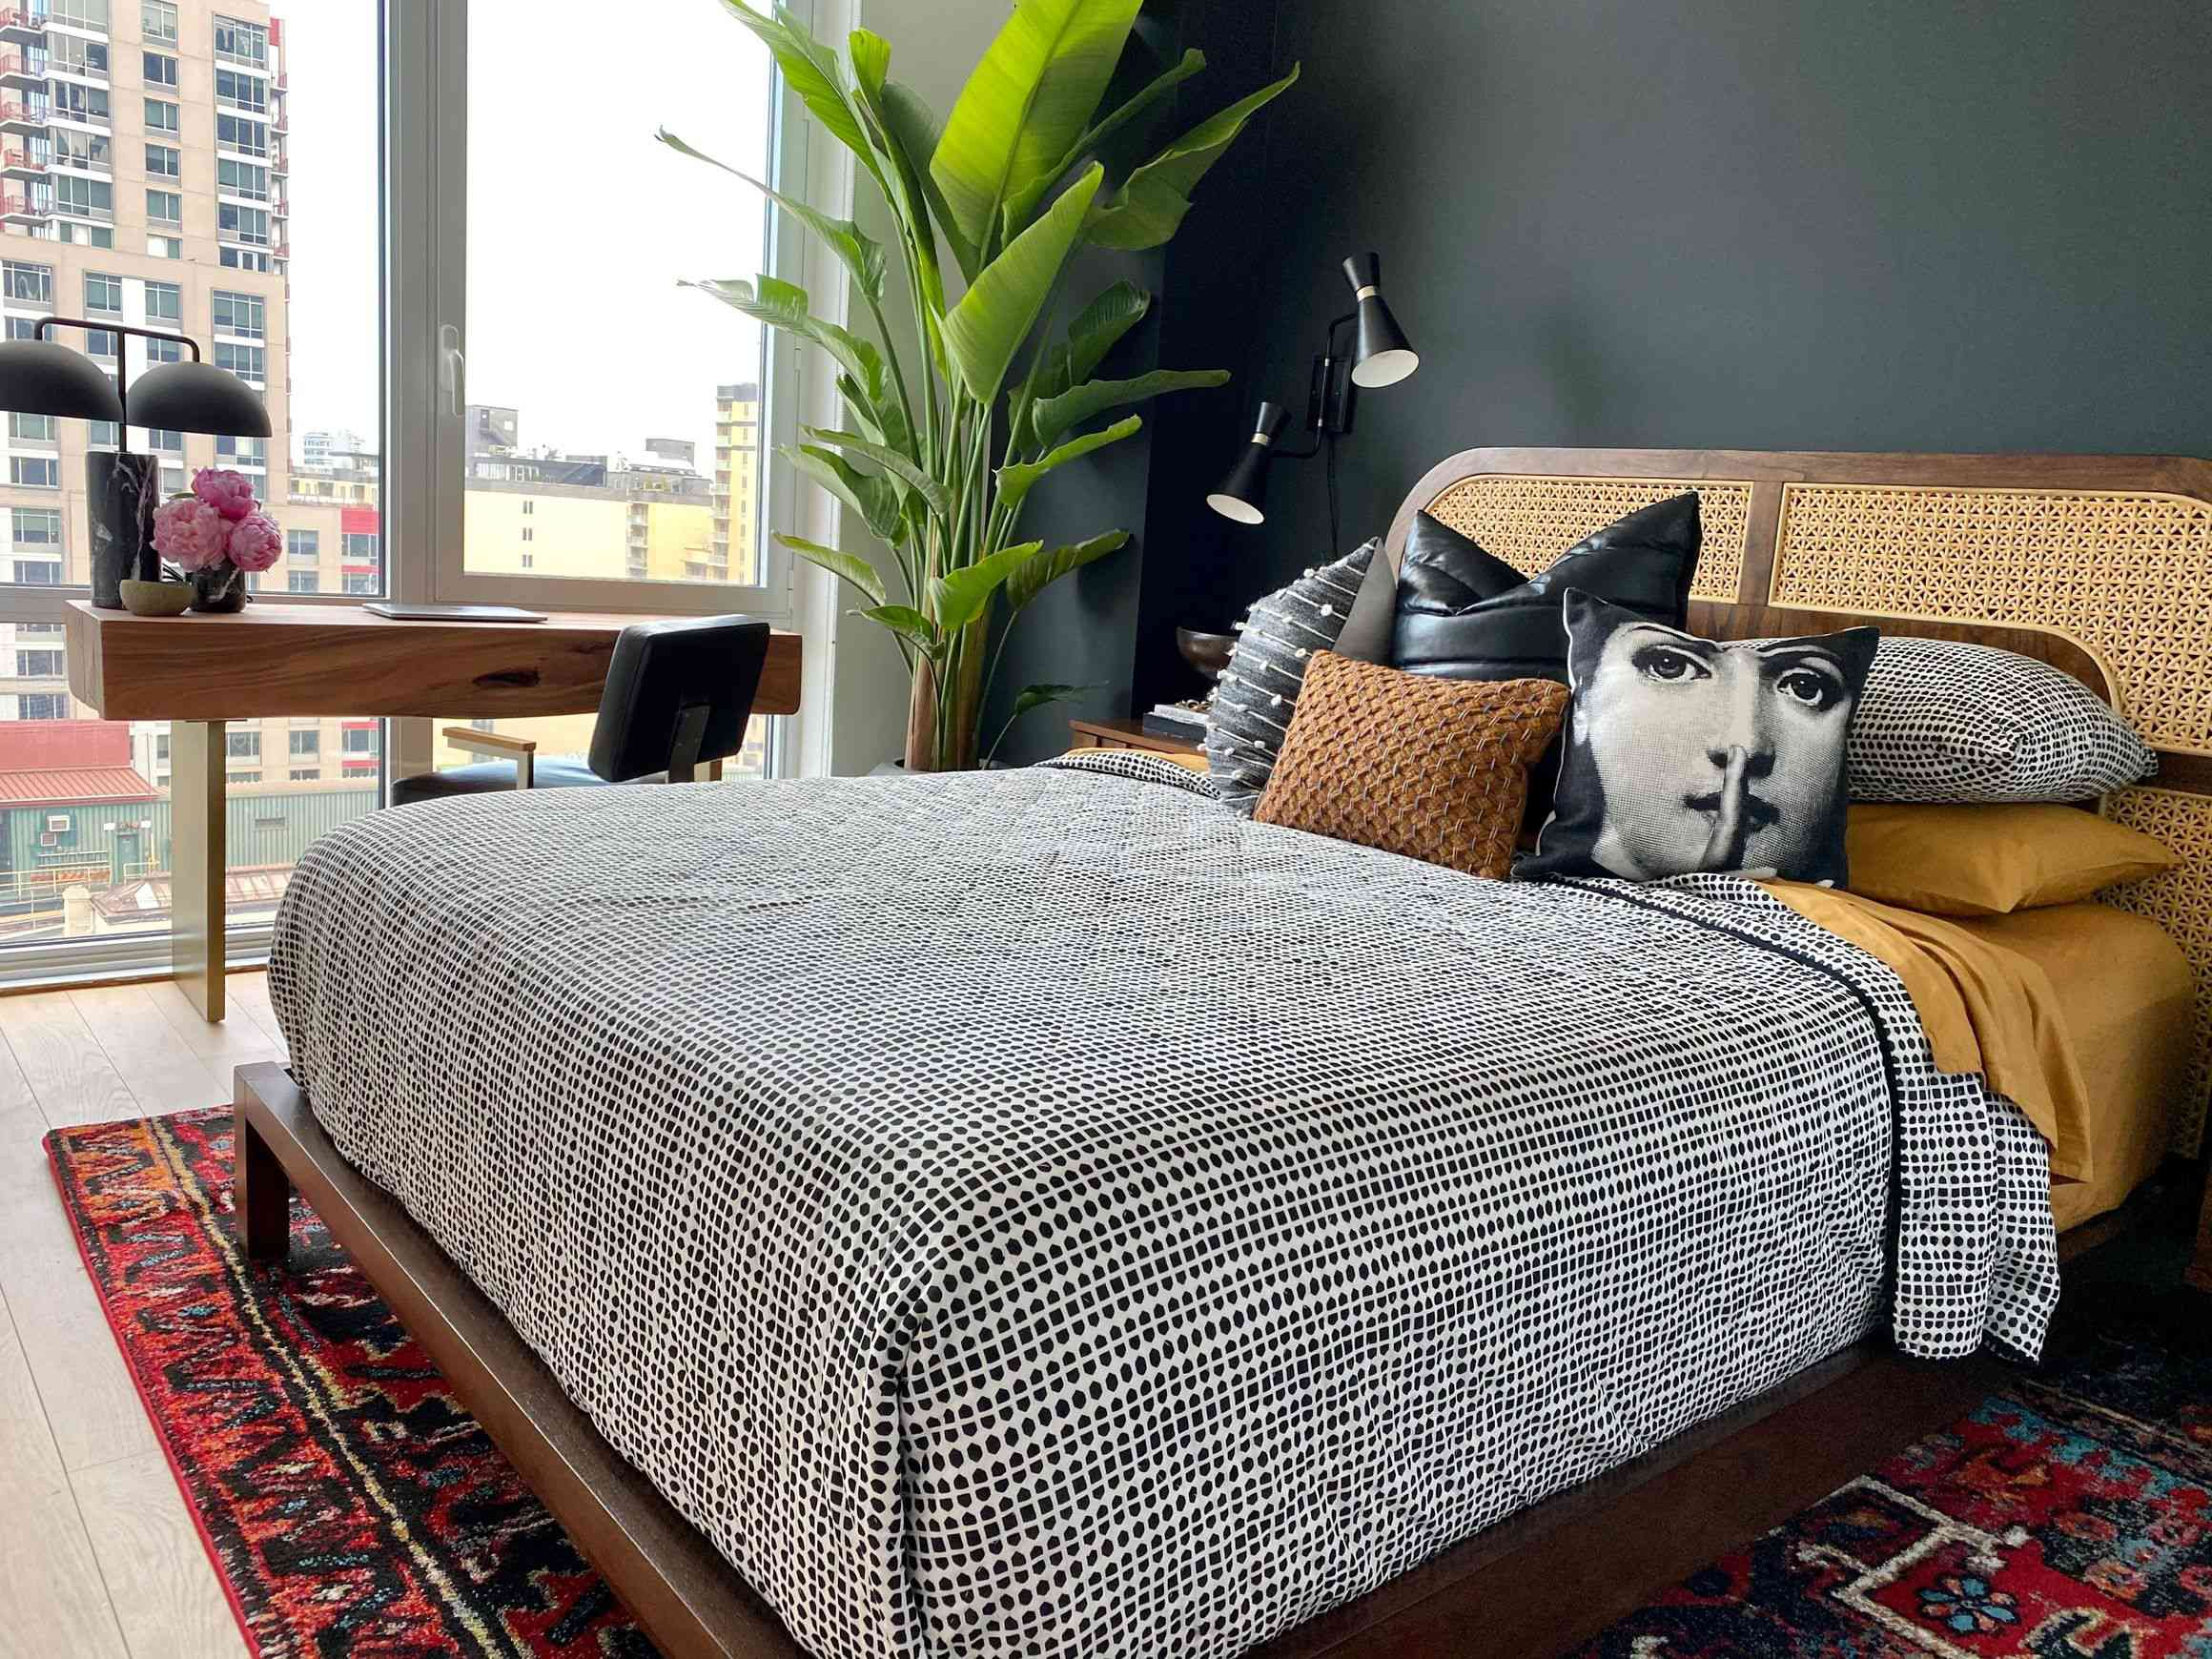 bedroom with black walls, pattern throw, wicker headboard, pillows with different textures